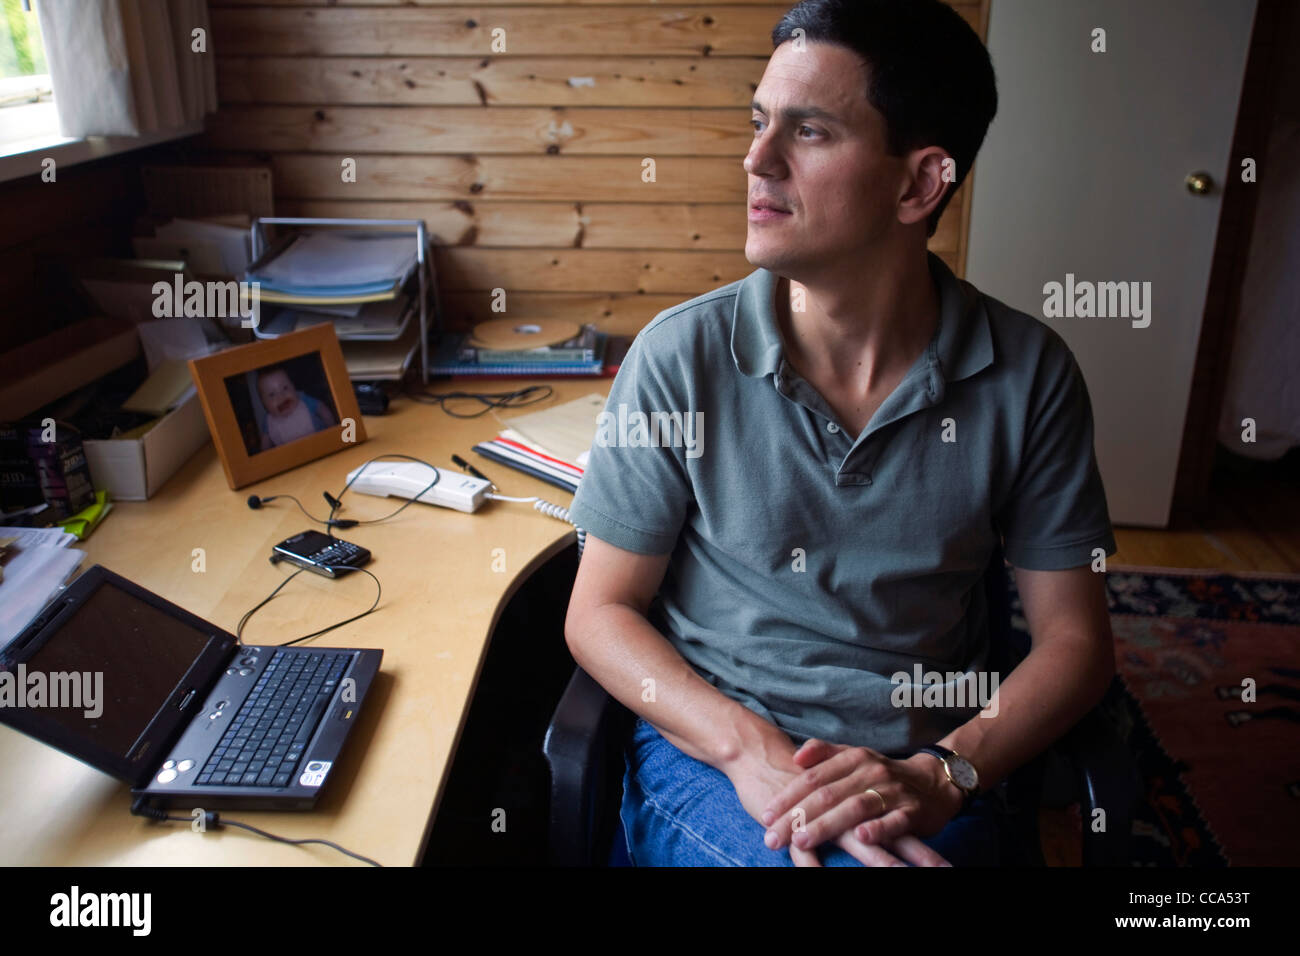 David Miliband, former Foreign Secretary and Member of Parliament for South Shields, Tyne and Wear at home in London - Stock Image